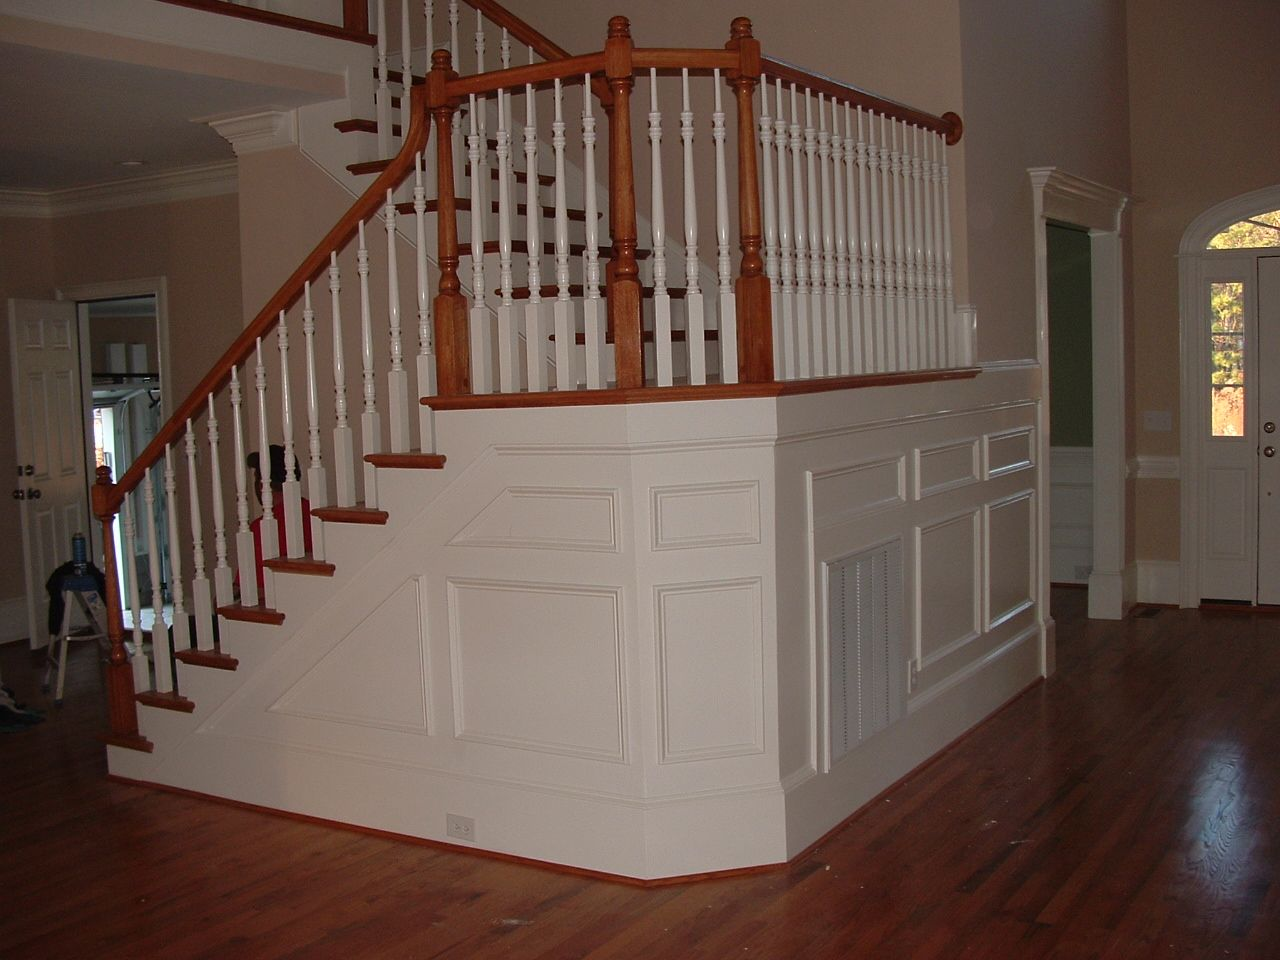 01 wainscot shadow boxing under landingjpg 1280960 pixels